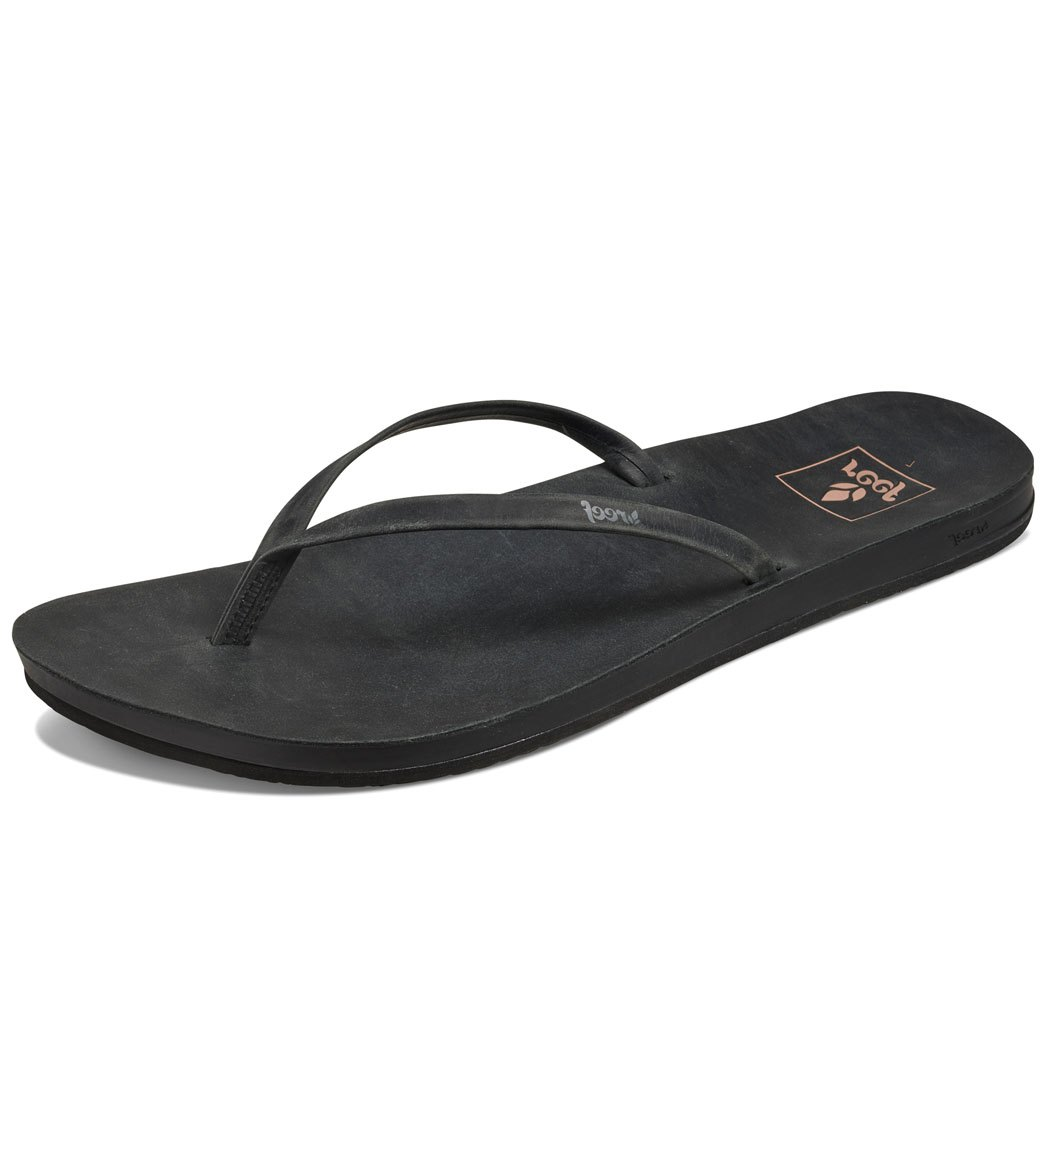 a04668f5eafb Reef Women s Cushion Bounce Slim Leather Flip Flop at SwimOutlet.com - Free  Shipping